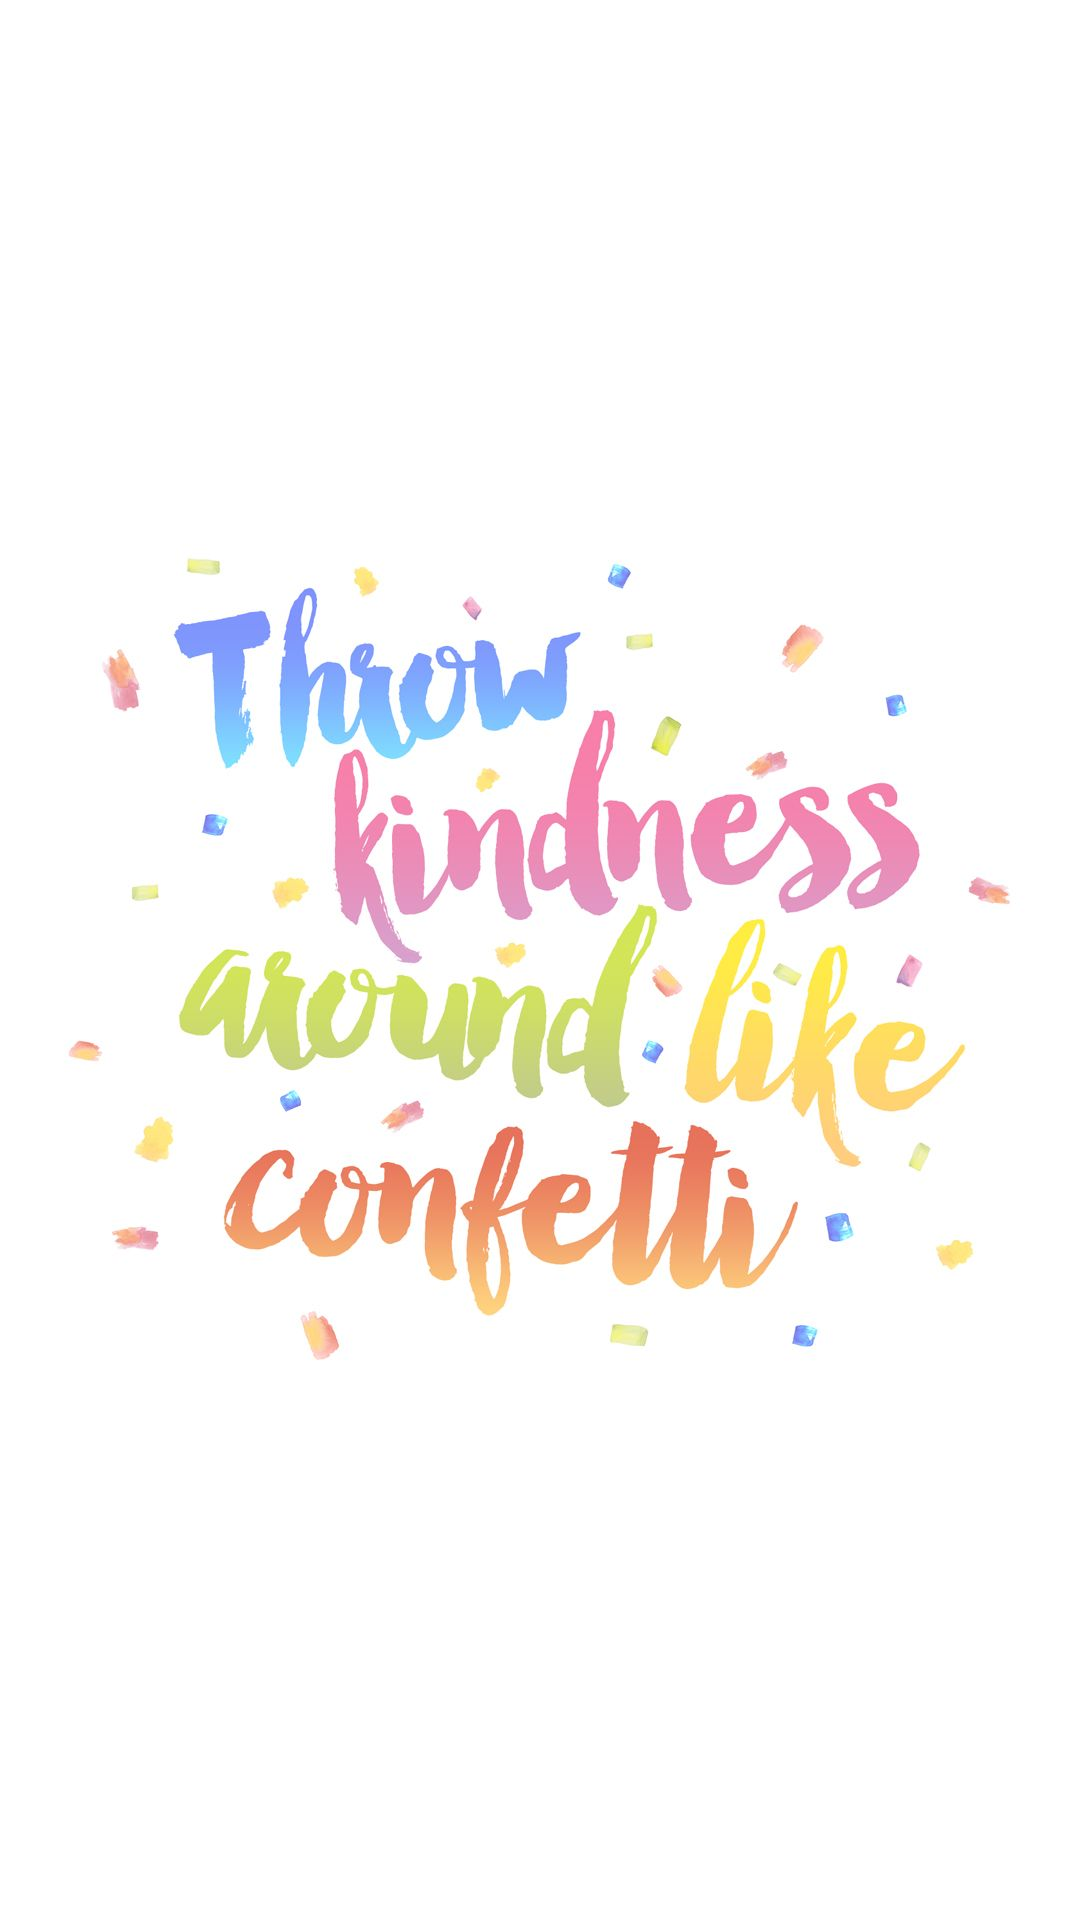 Pink Blue Rainbow Colours Kindness Confetti Iphone Wallpaper Phone Background Lock Screen Positive Quotes New Quotes Wallpaper Iphone Quotes